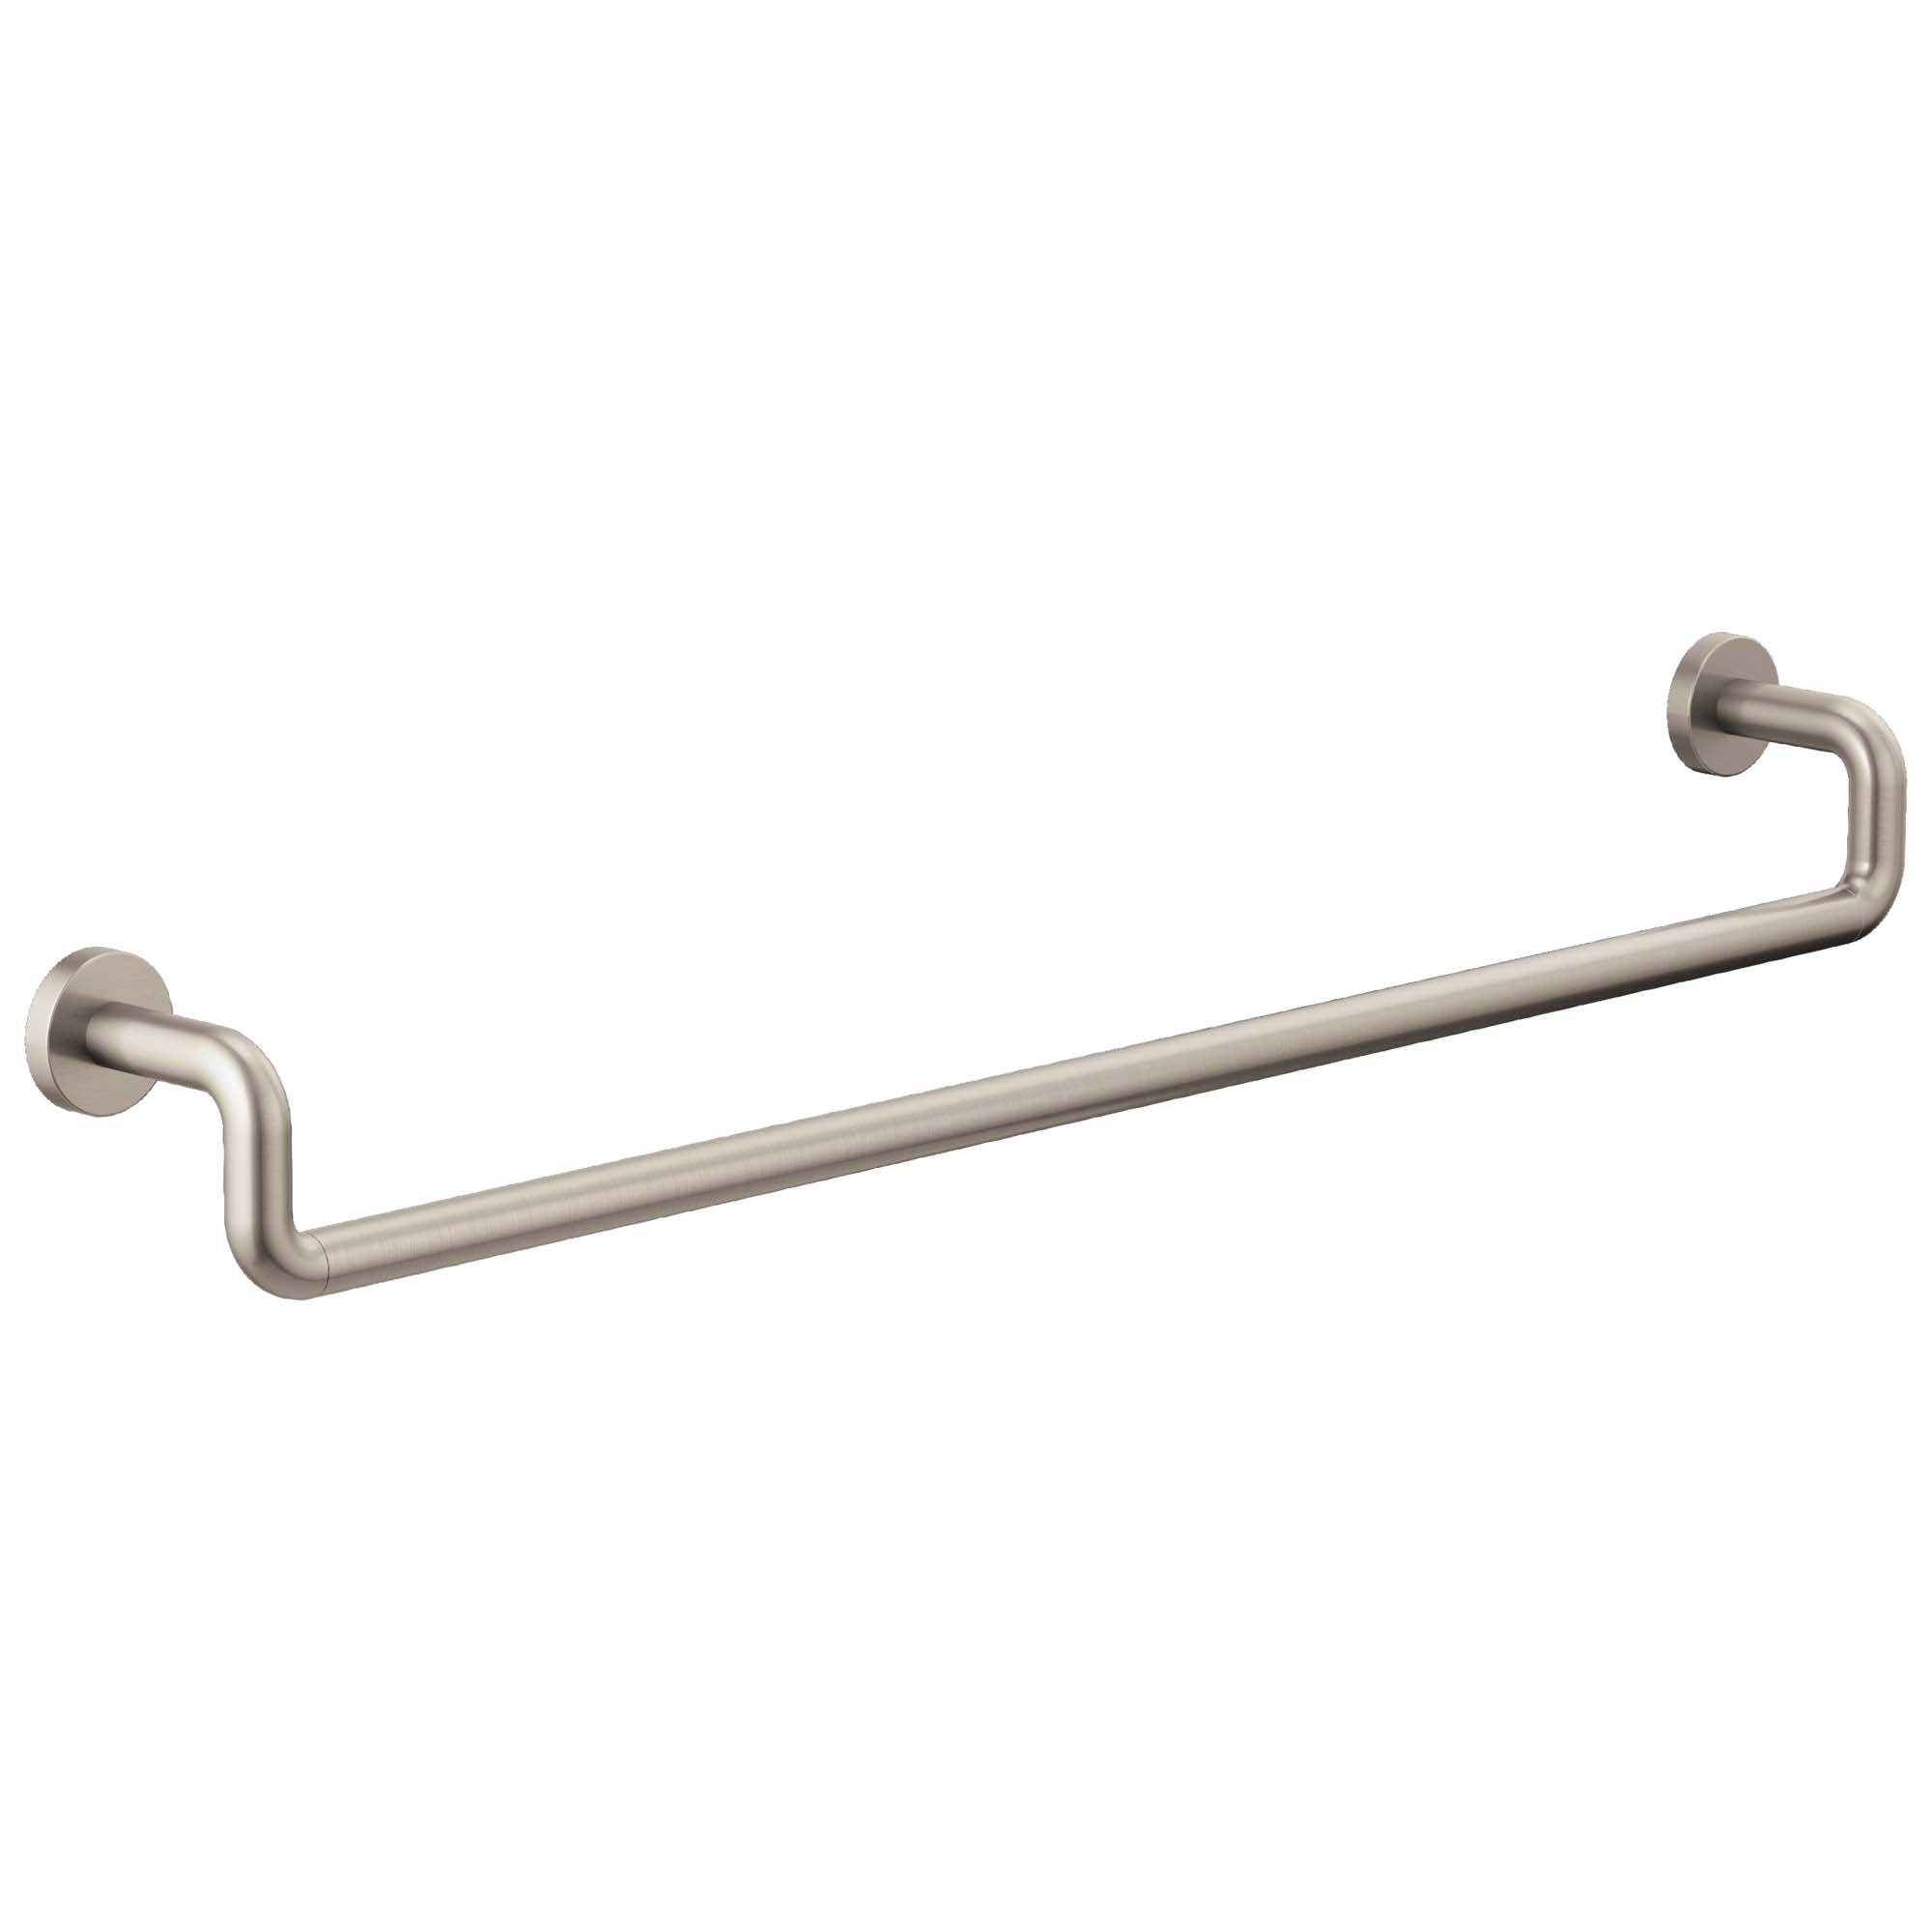 "Brizo 693035-NK Litze 30"" Towel Bar - Luxe Nickel"